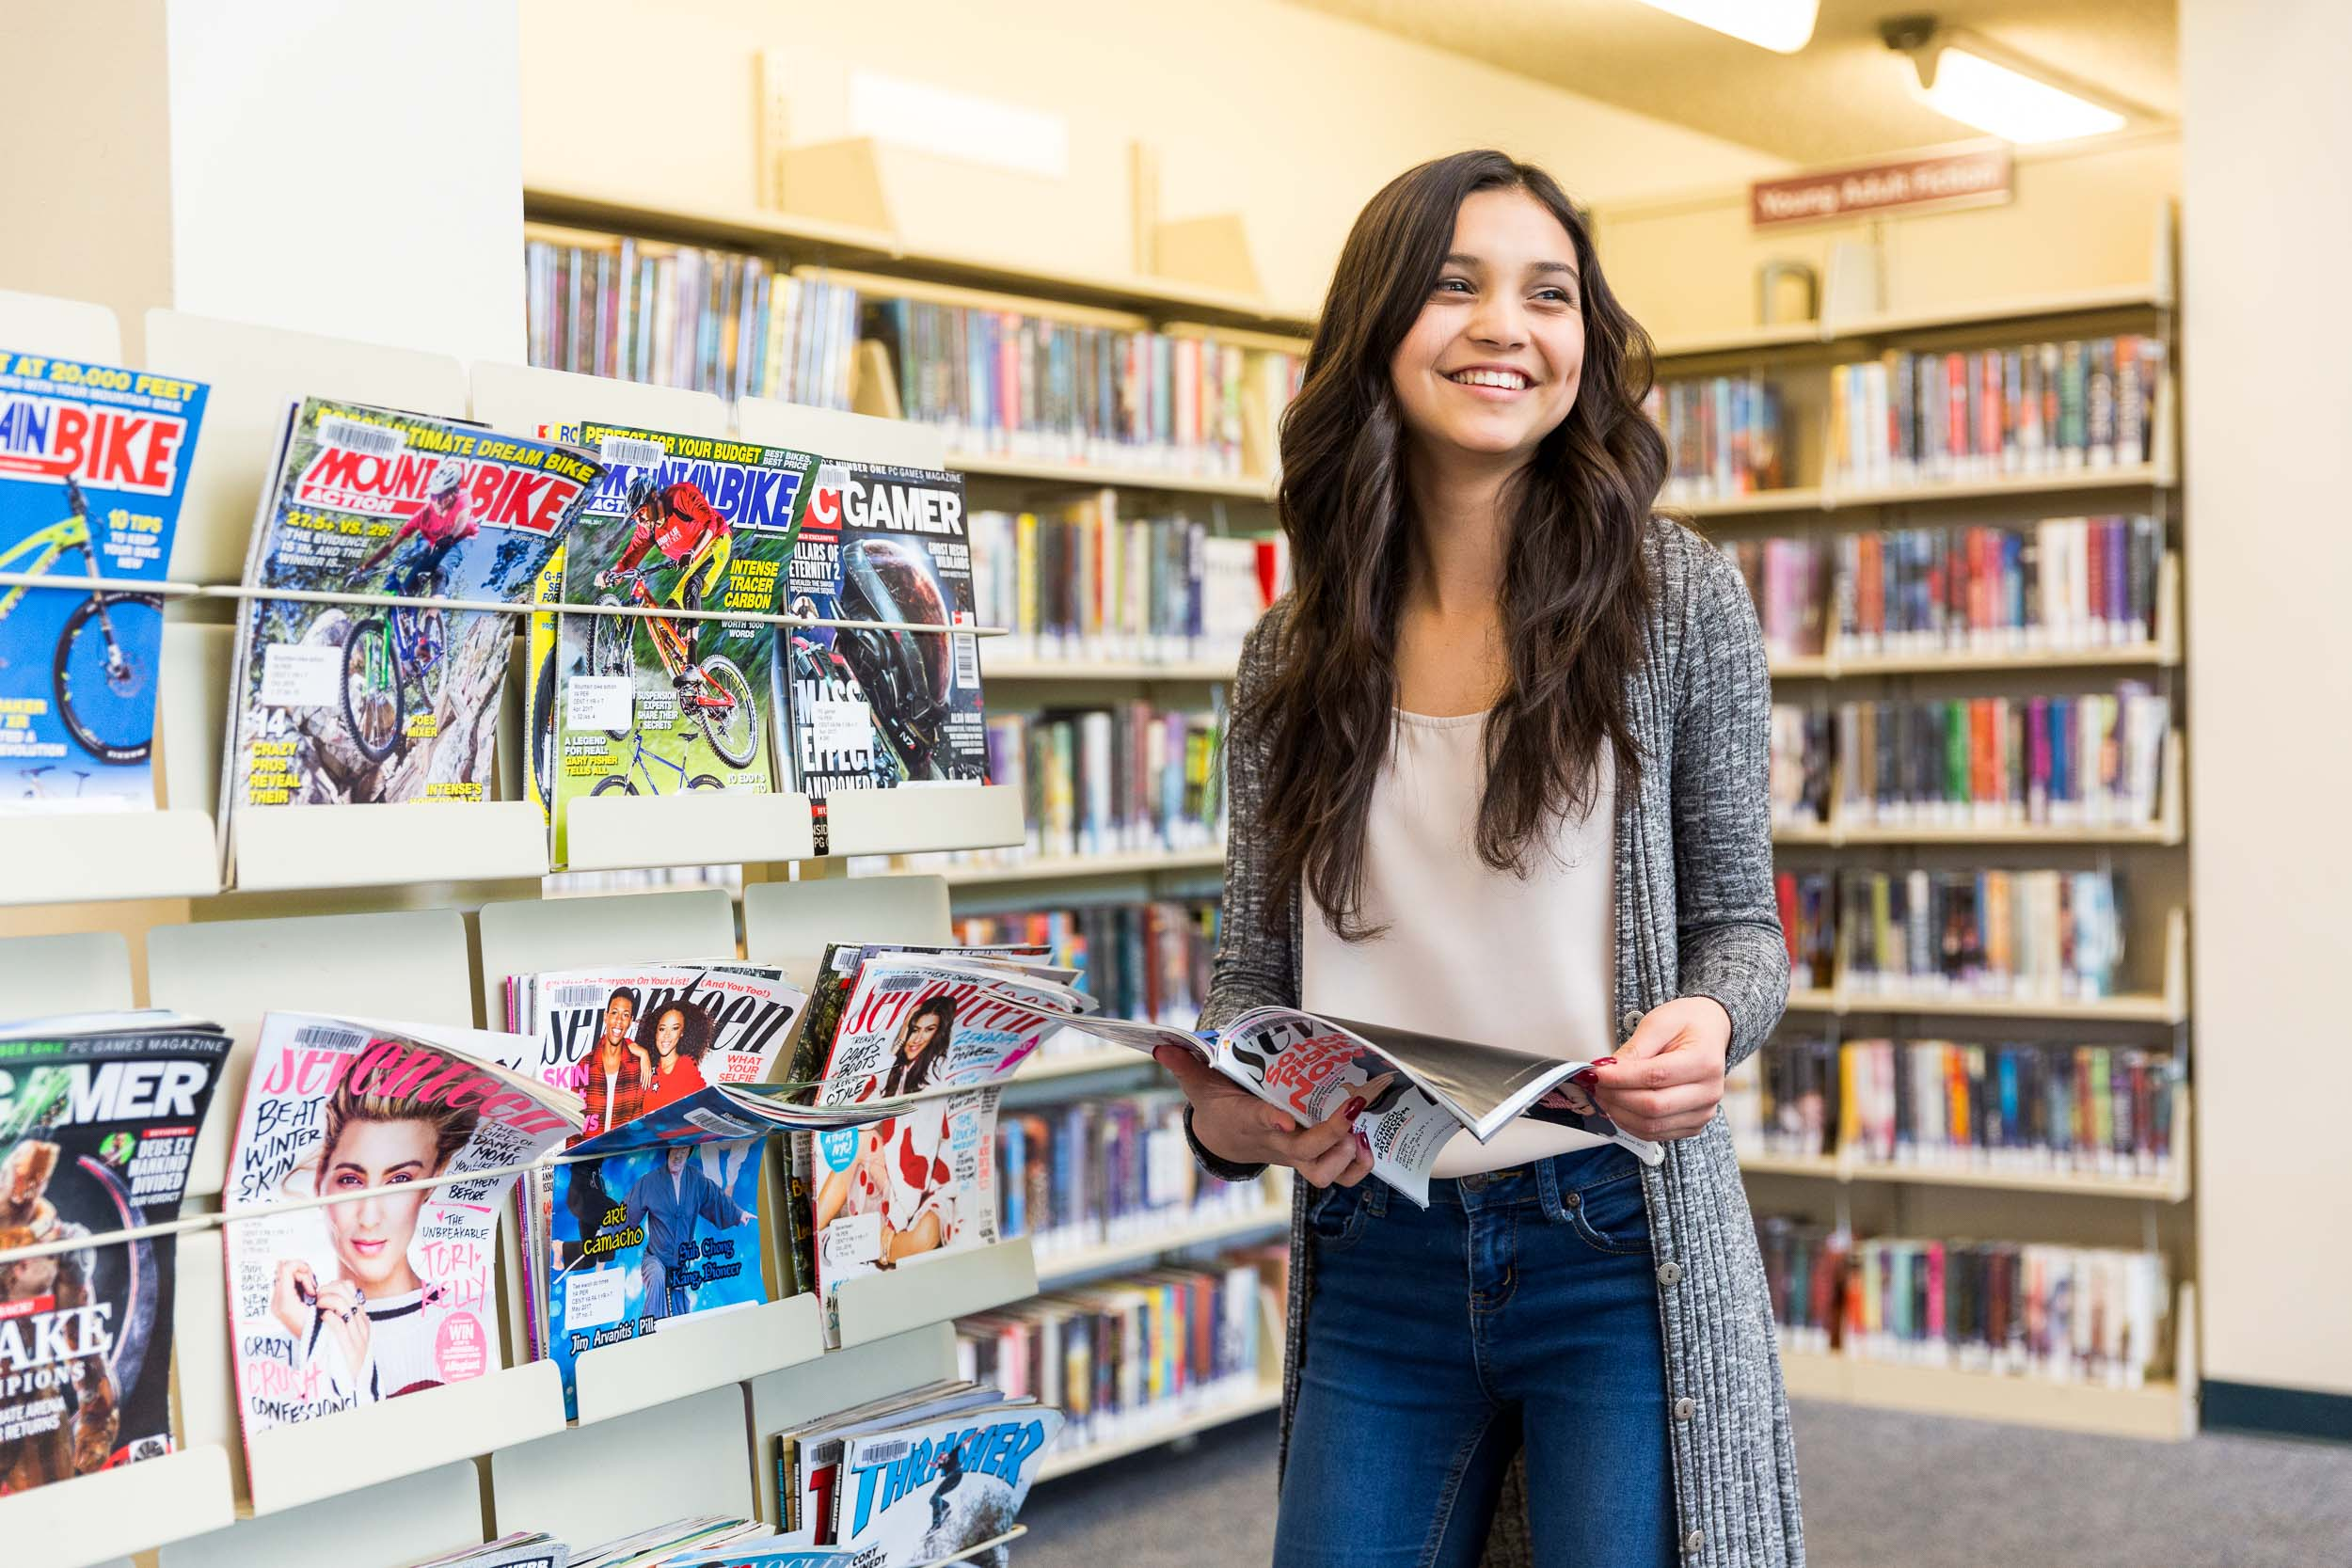 Sonoma County Library offers books, clubs, services, and programs for all ages in Northern California.